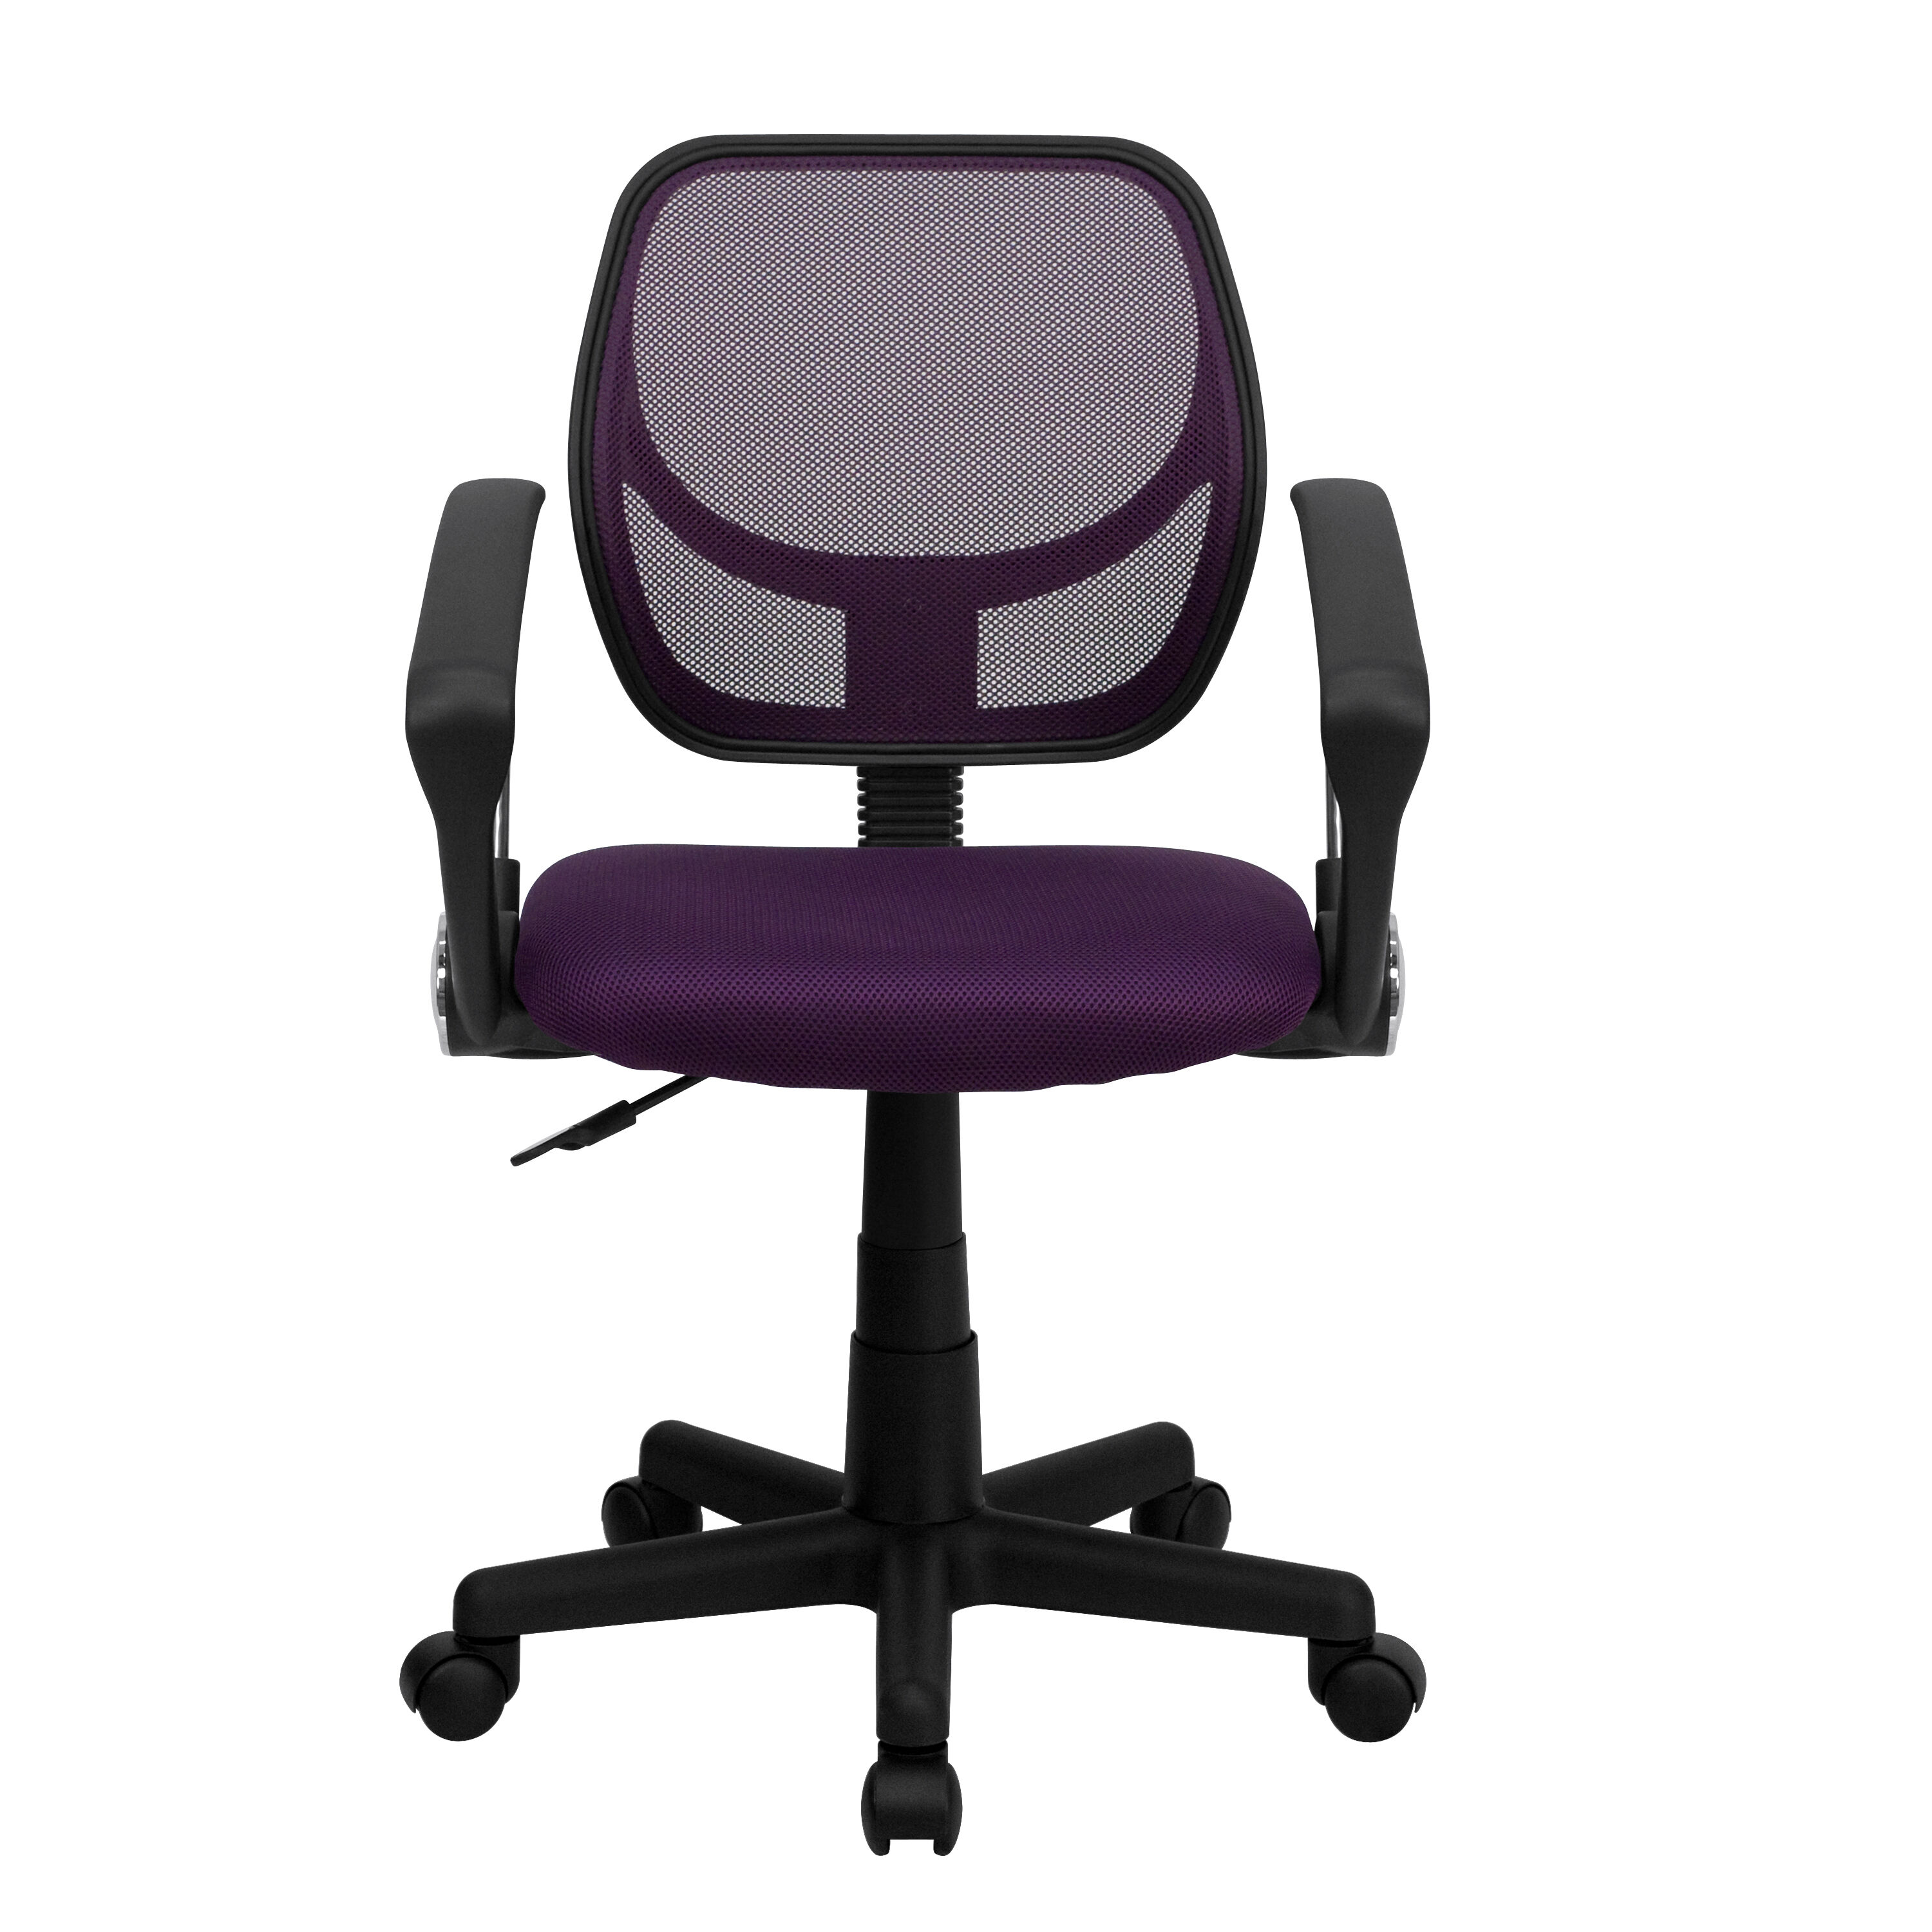 purple swivel chair wooden step stool combo low back task wa 3074 pur a gg